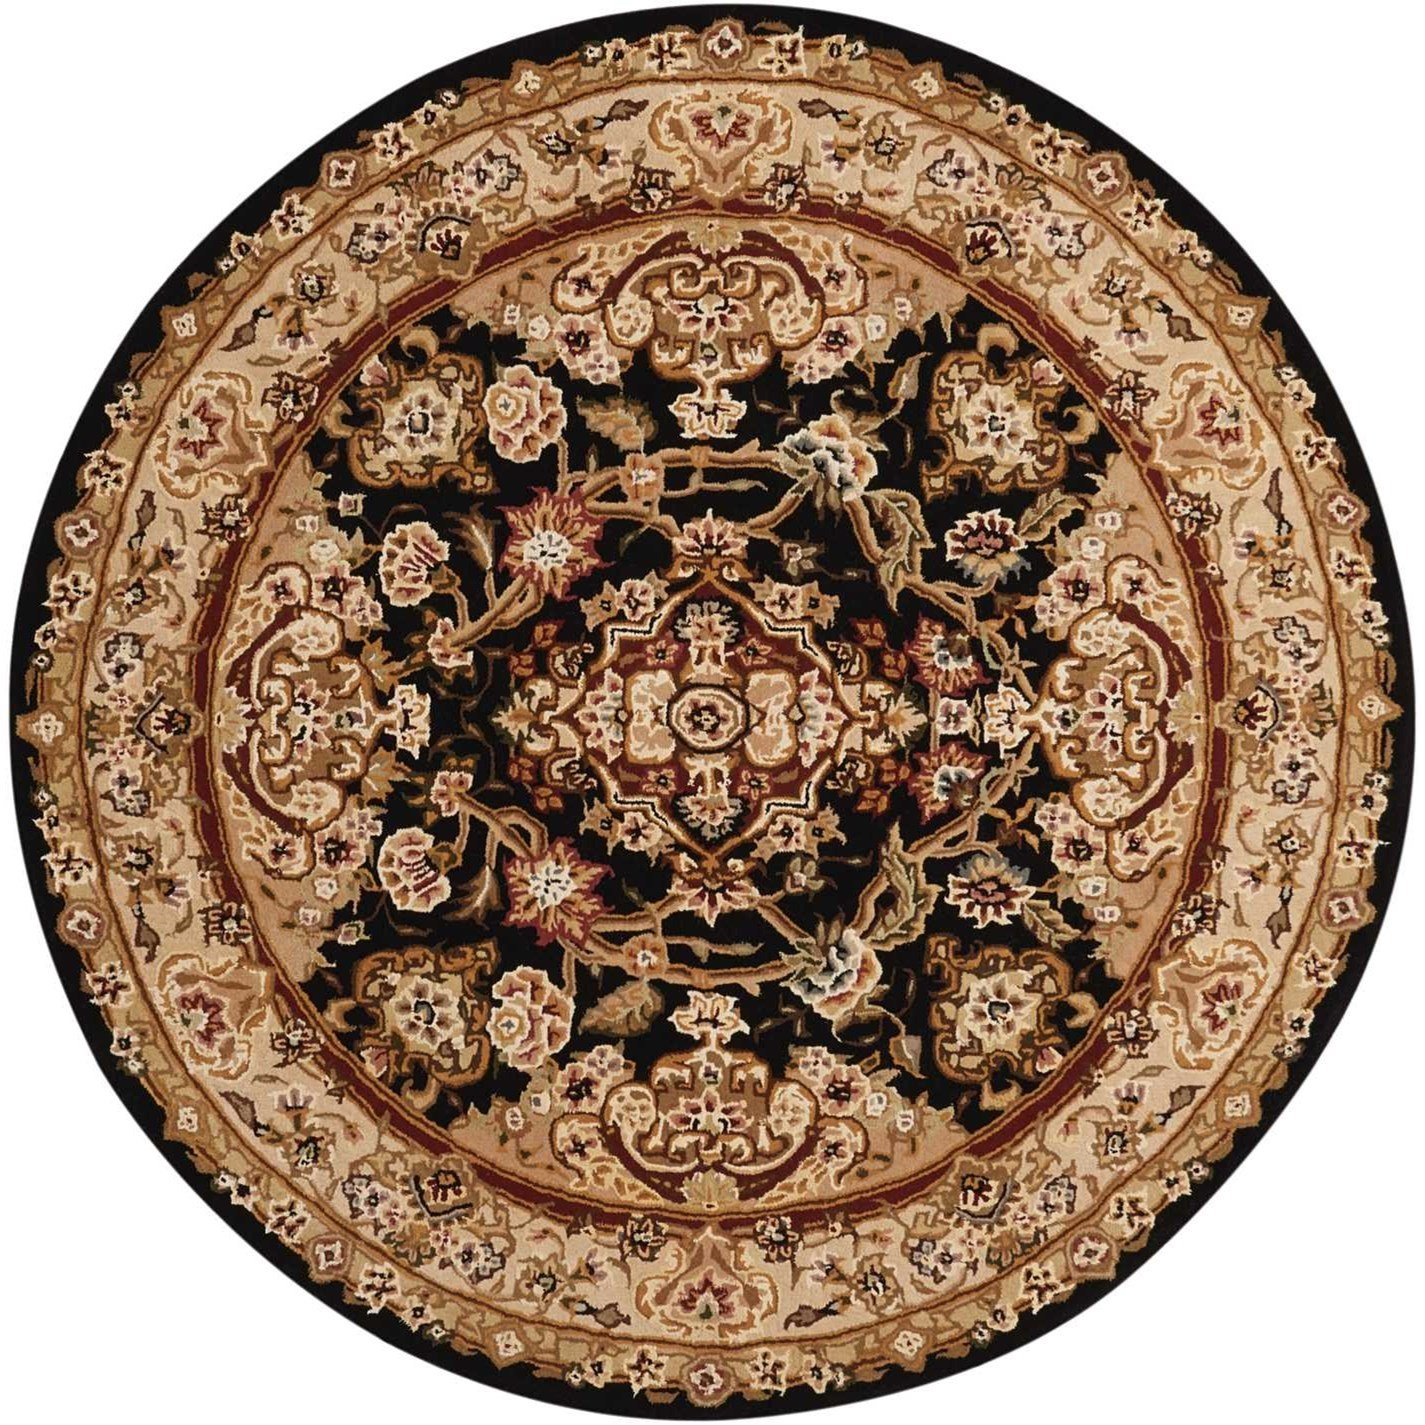 Nourison 2000 4' x 4' Black Round Rug by Nourison at Home Collections Furniture